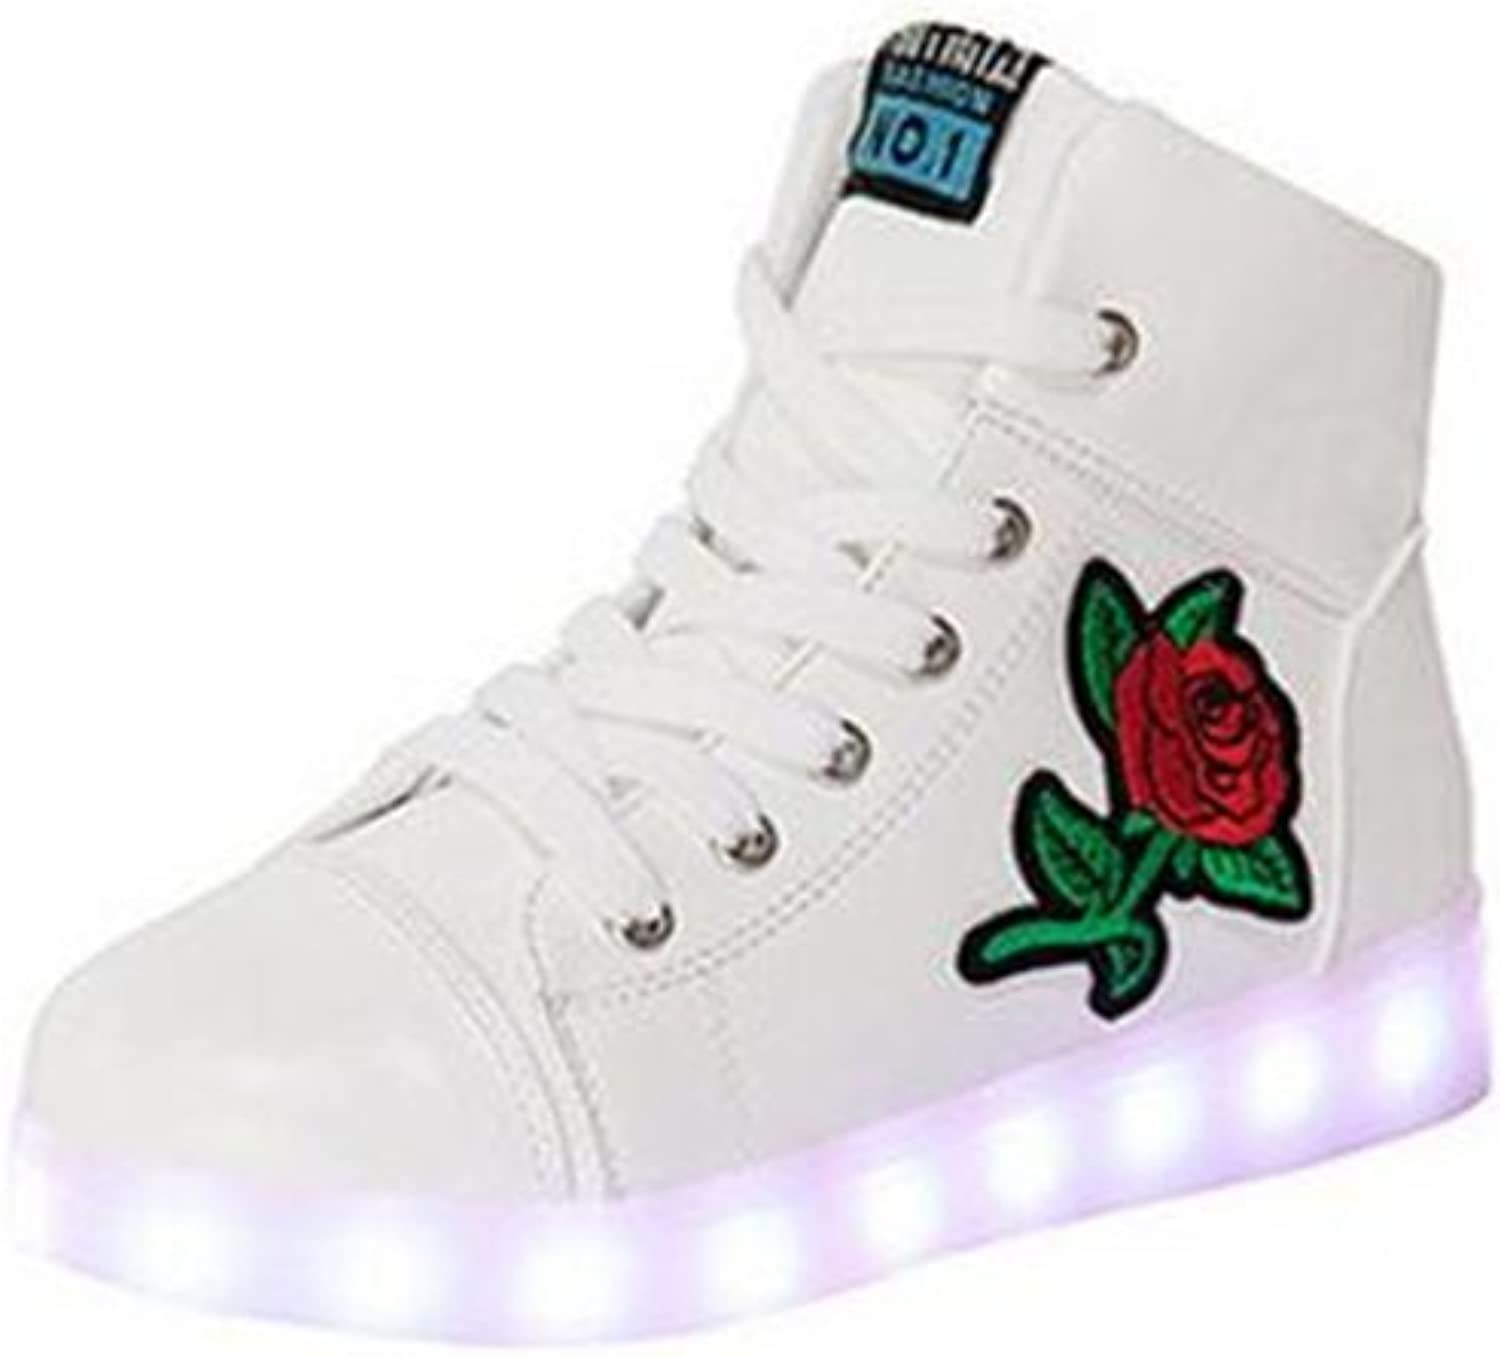 Southed Women's High-Top LED Light up shoes USB Charging Flashing Sneakers